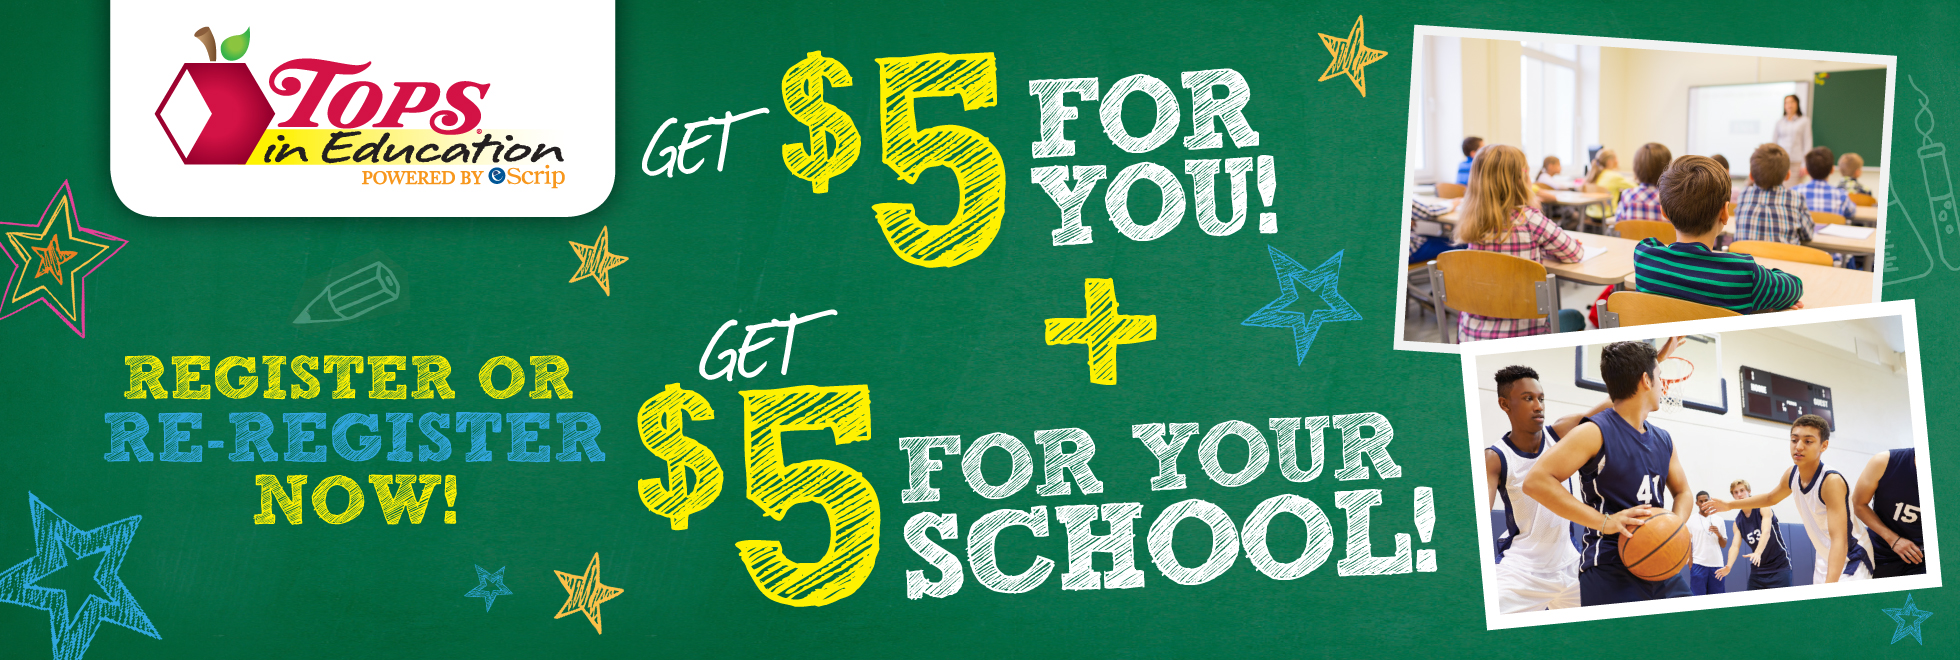 TOPS in Education $5 Promotion